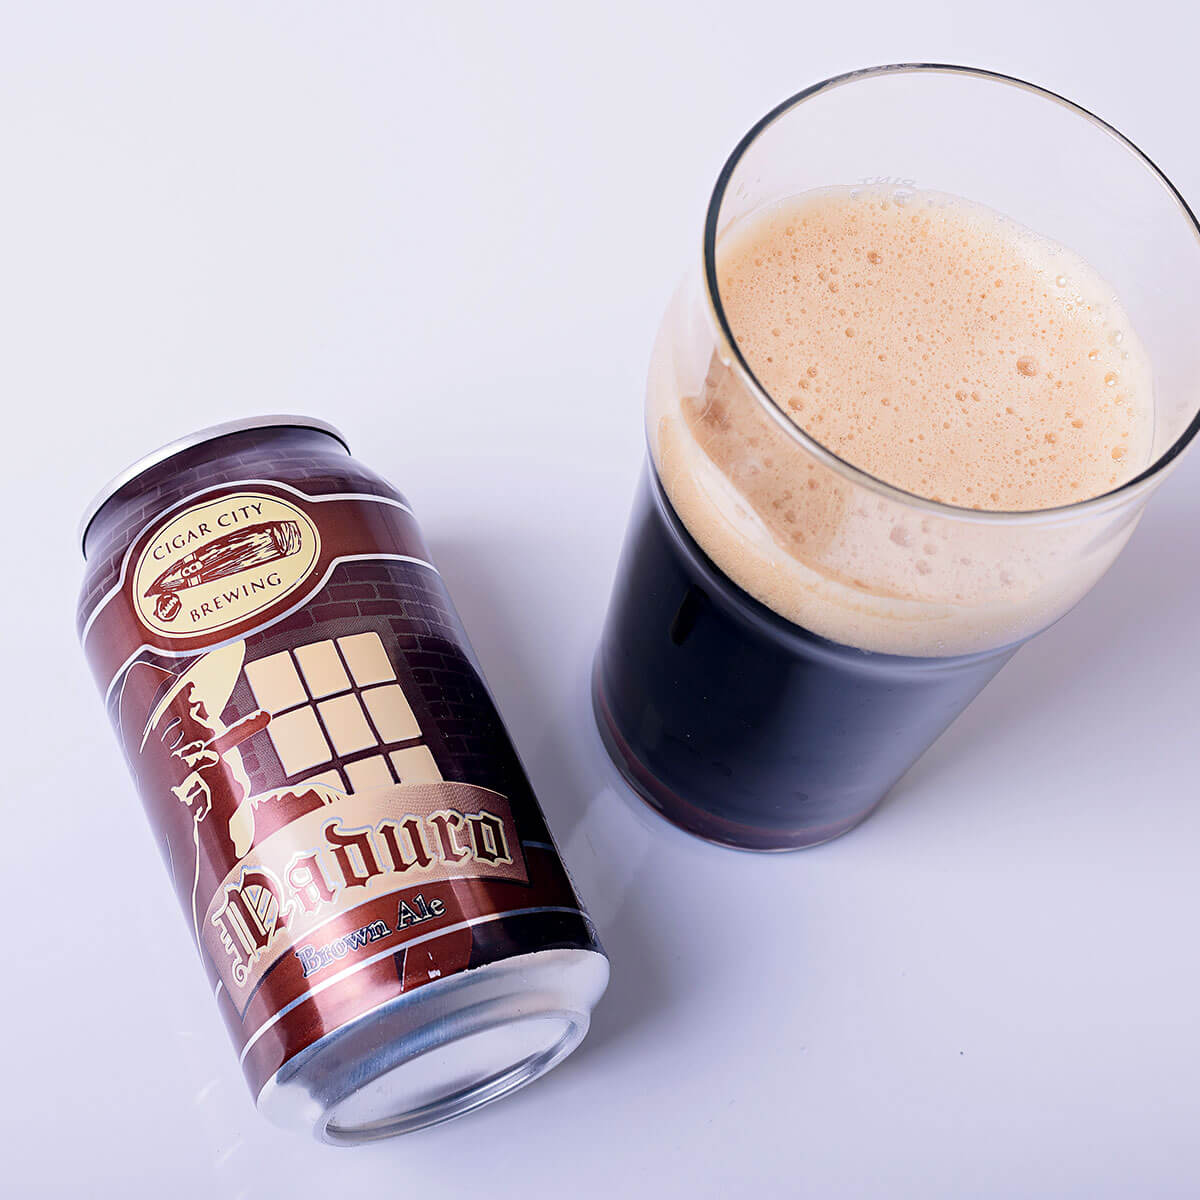 Maduro Brown Ale is an English-style Brown Ale by Cigar City Brewing that blends toffee, chocolate, and brown sugar with nut, floral hops, and coffee.